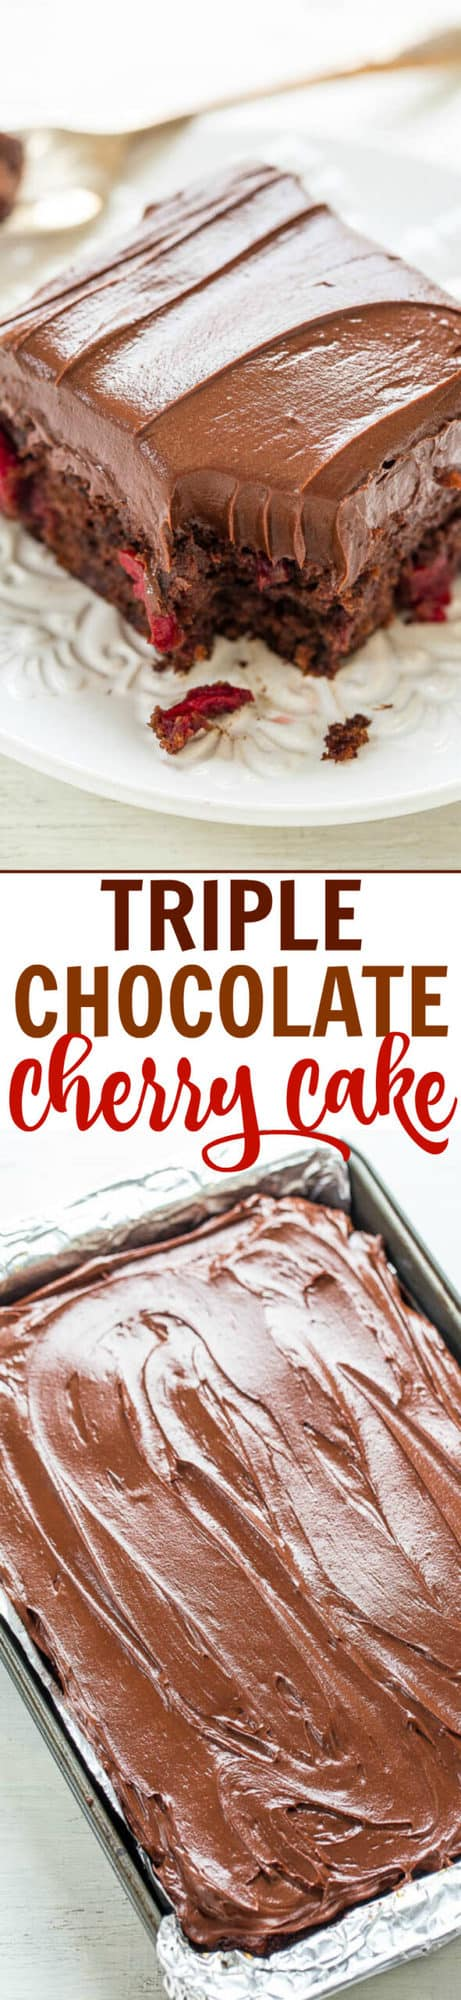 This Triple Chocolate Cherry Cake is loaded with juicy cherries and topped with an easy homemade chocolate frosting. I used a few shortcuts in this recipe to save time, but this cake tastes completely homemade!#cherry #chocolatecake #cakerecipe #cake #easycake #dessertrecipe #dessert #chocolatecherry #frosting #frostingrecipe